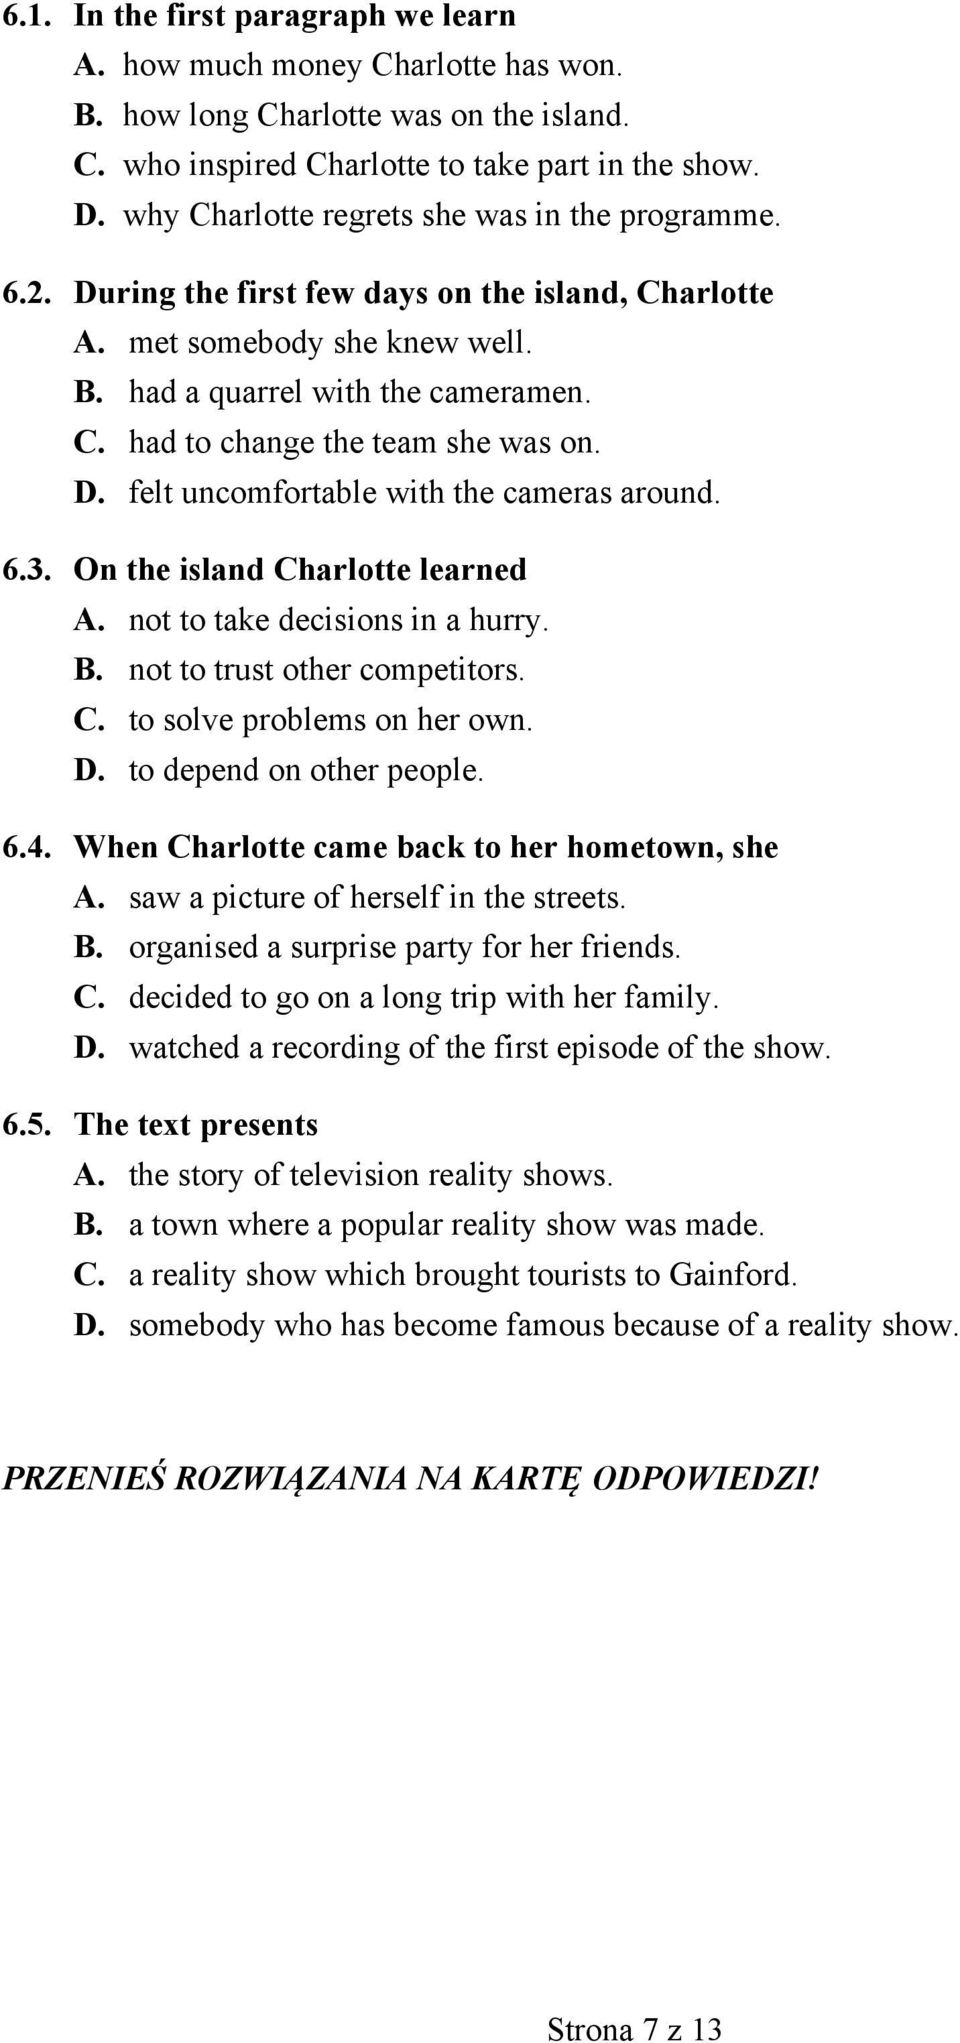 D. felt uncomfortable with the cameras around. 6.3. On the island Charlotte learned A. not to take decisions in a hurry. B. not to trust other competitors. C. to solve problems on her own. D.